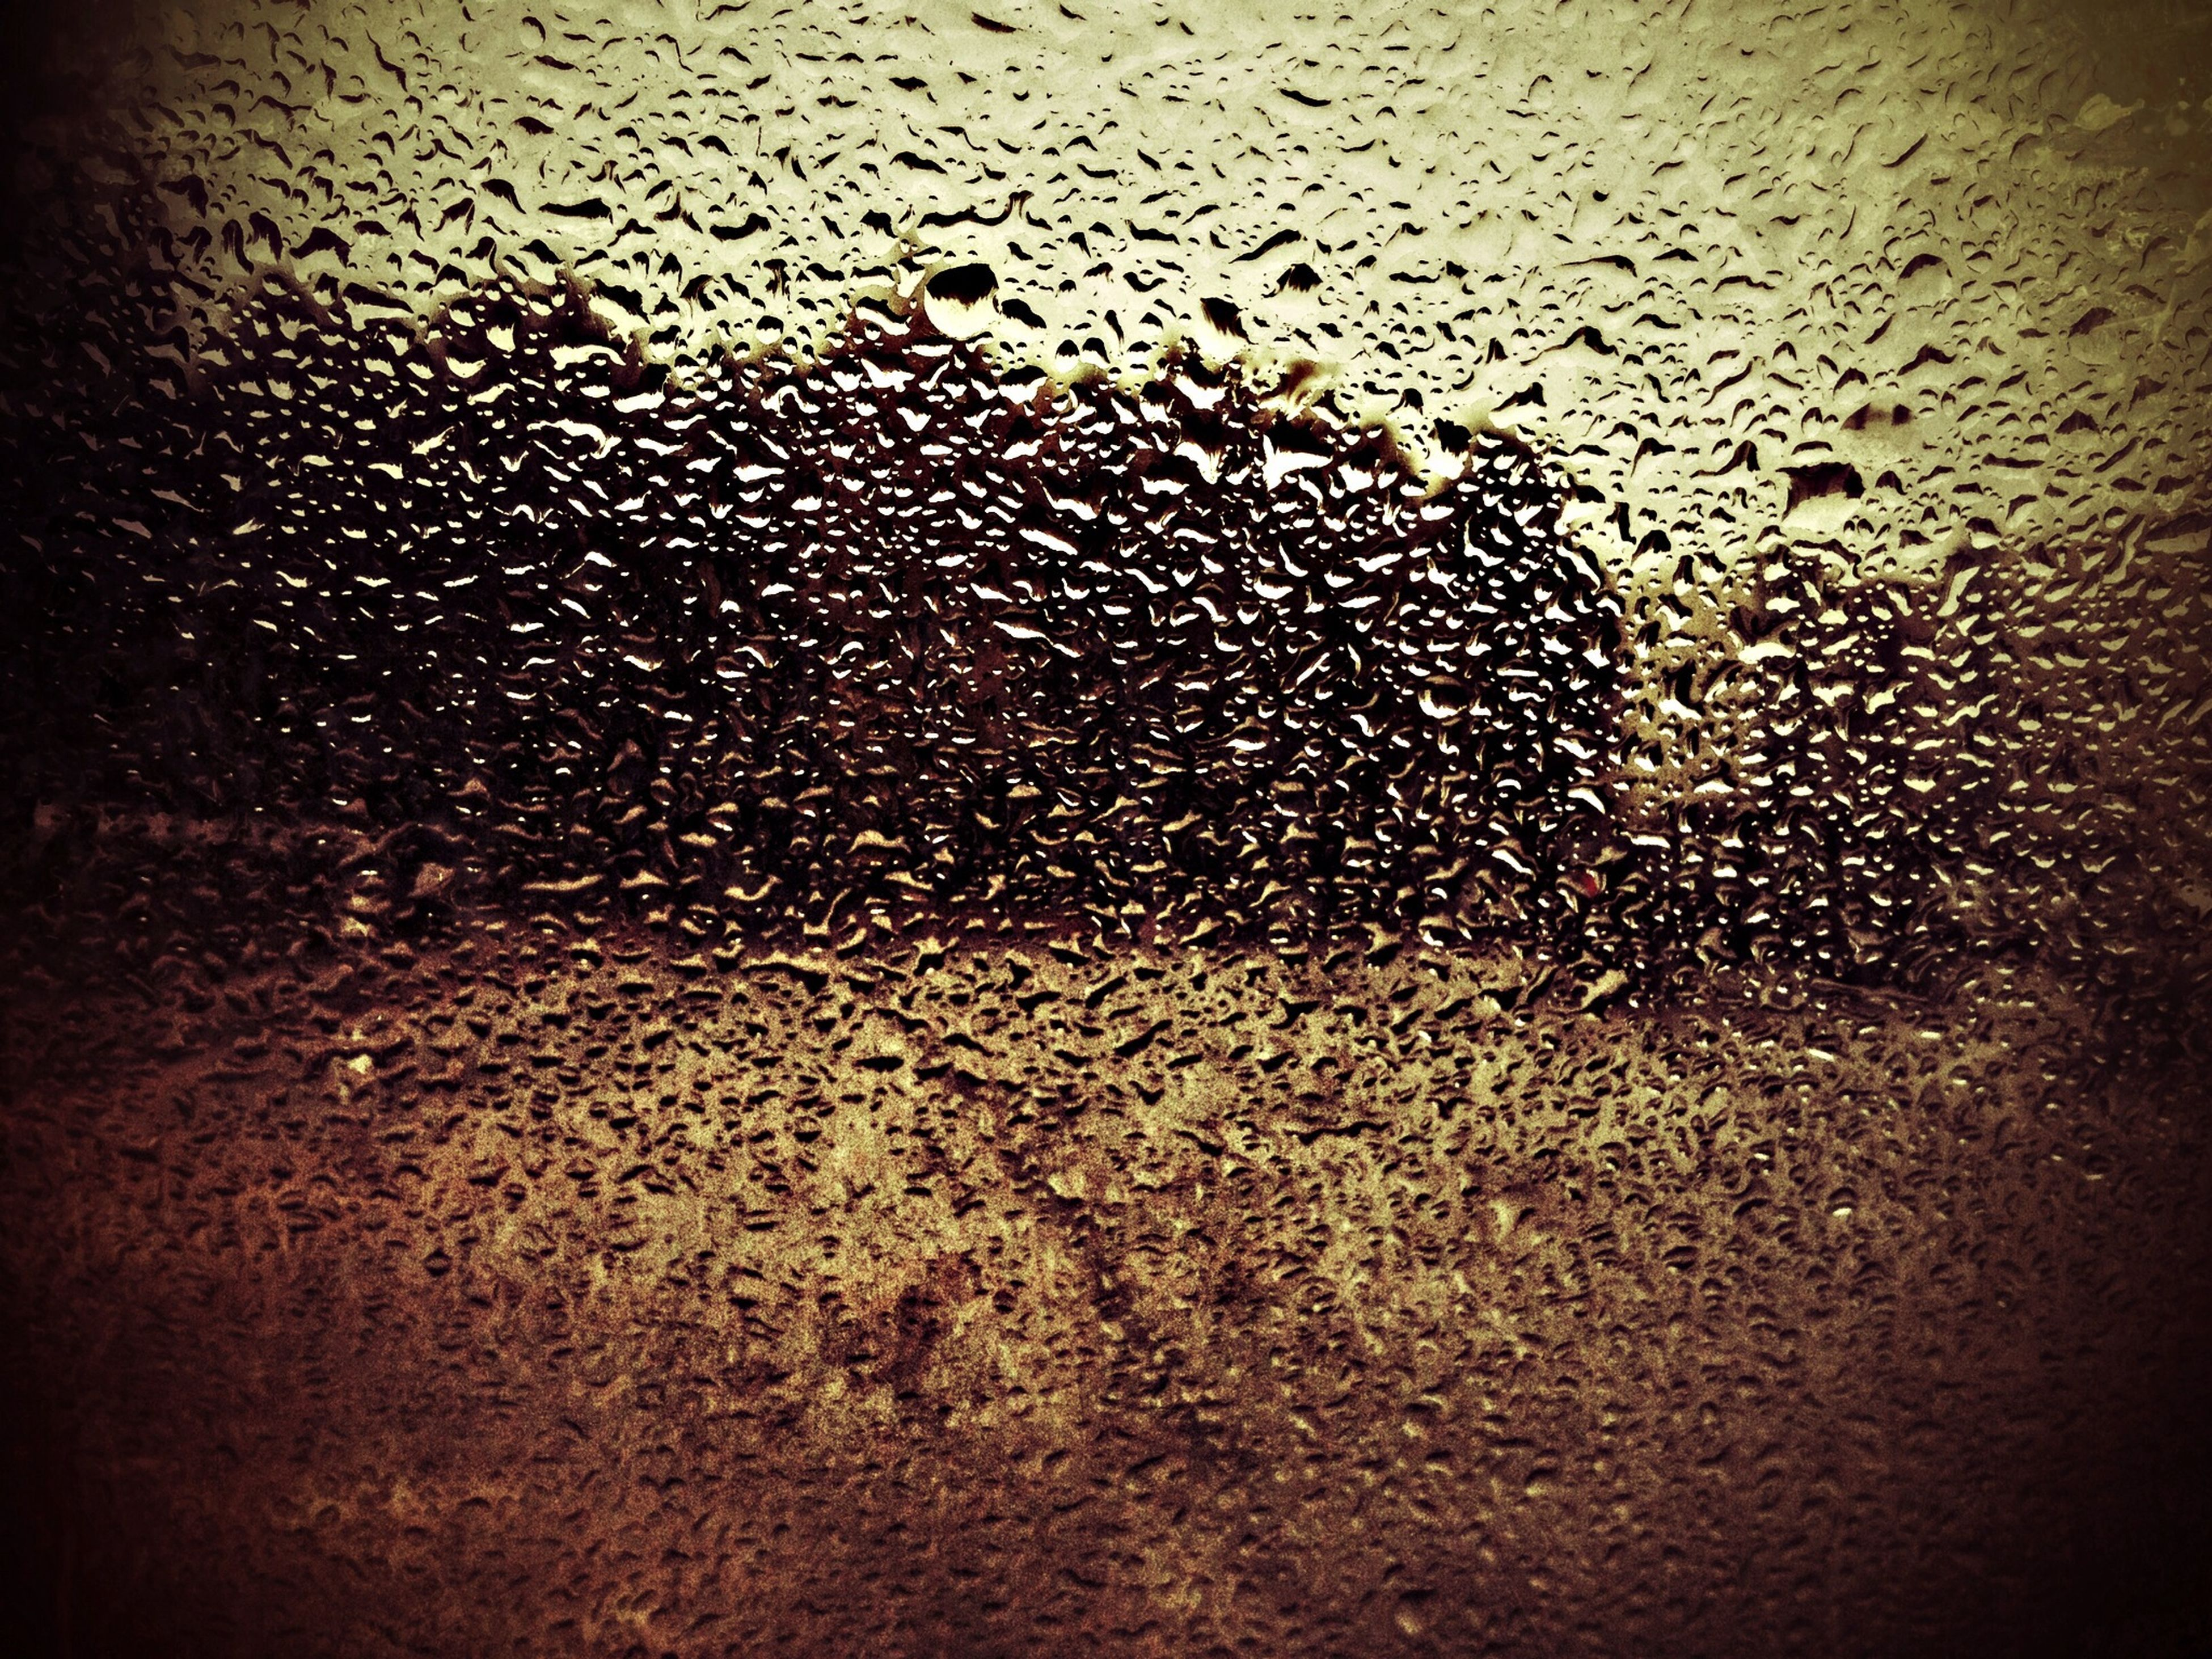 drop, wet, indoors, window, water, transparent, glass - material, full frame, rain, backgrounds, raindrop, close-up, weather, glass, season, no people, condensation, droplet, sky, nature